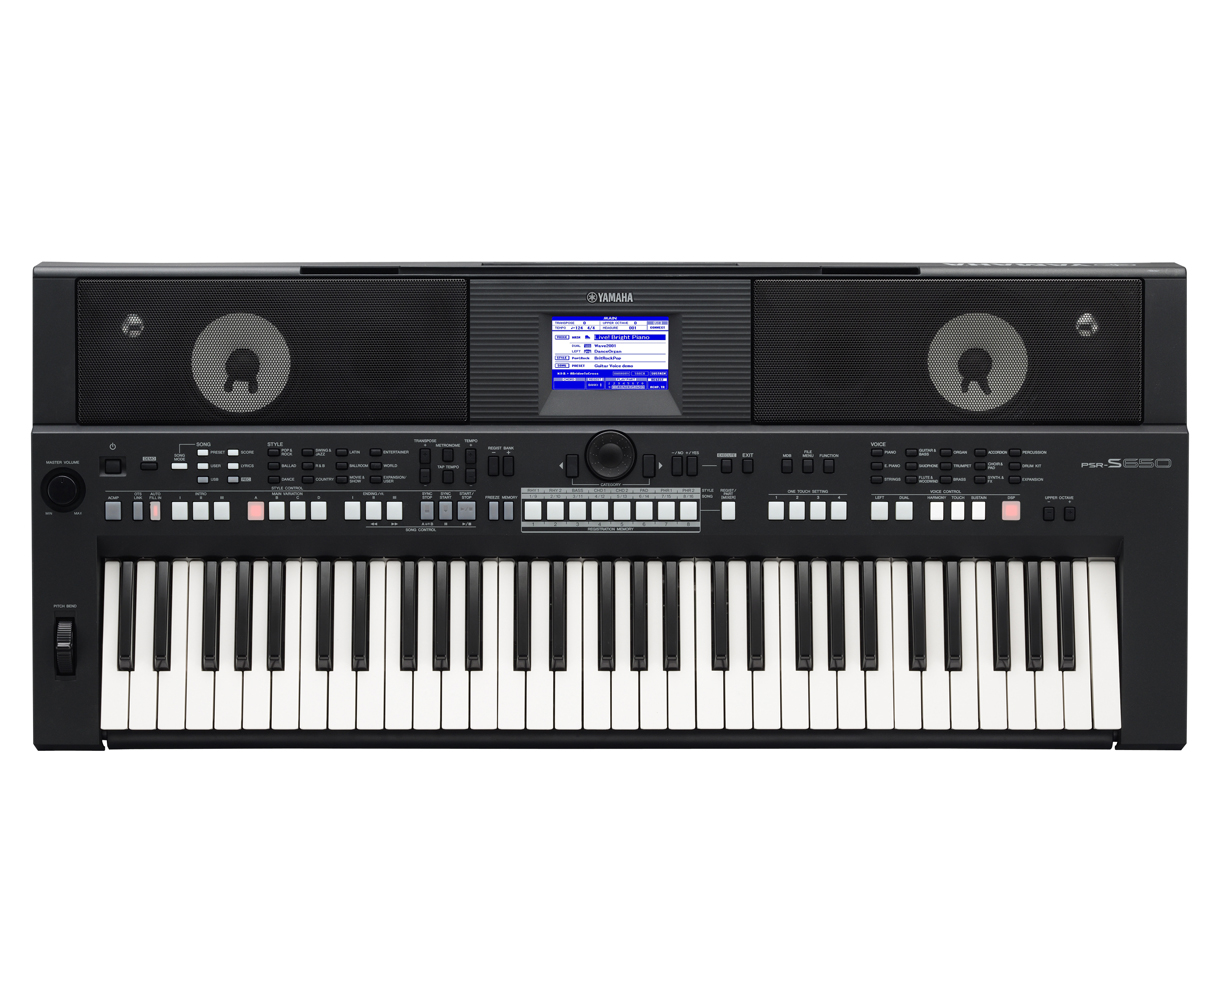 Yamaha psr s650 psrs650 61 key portable sequencer arranger for Yamaha professional keyboard price